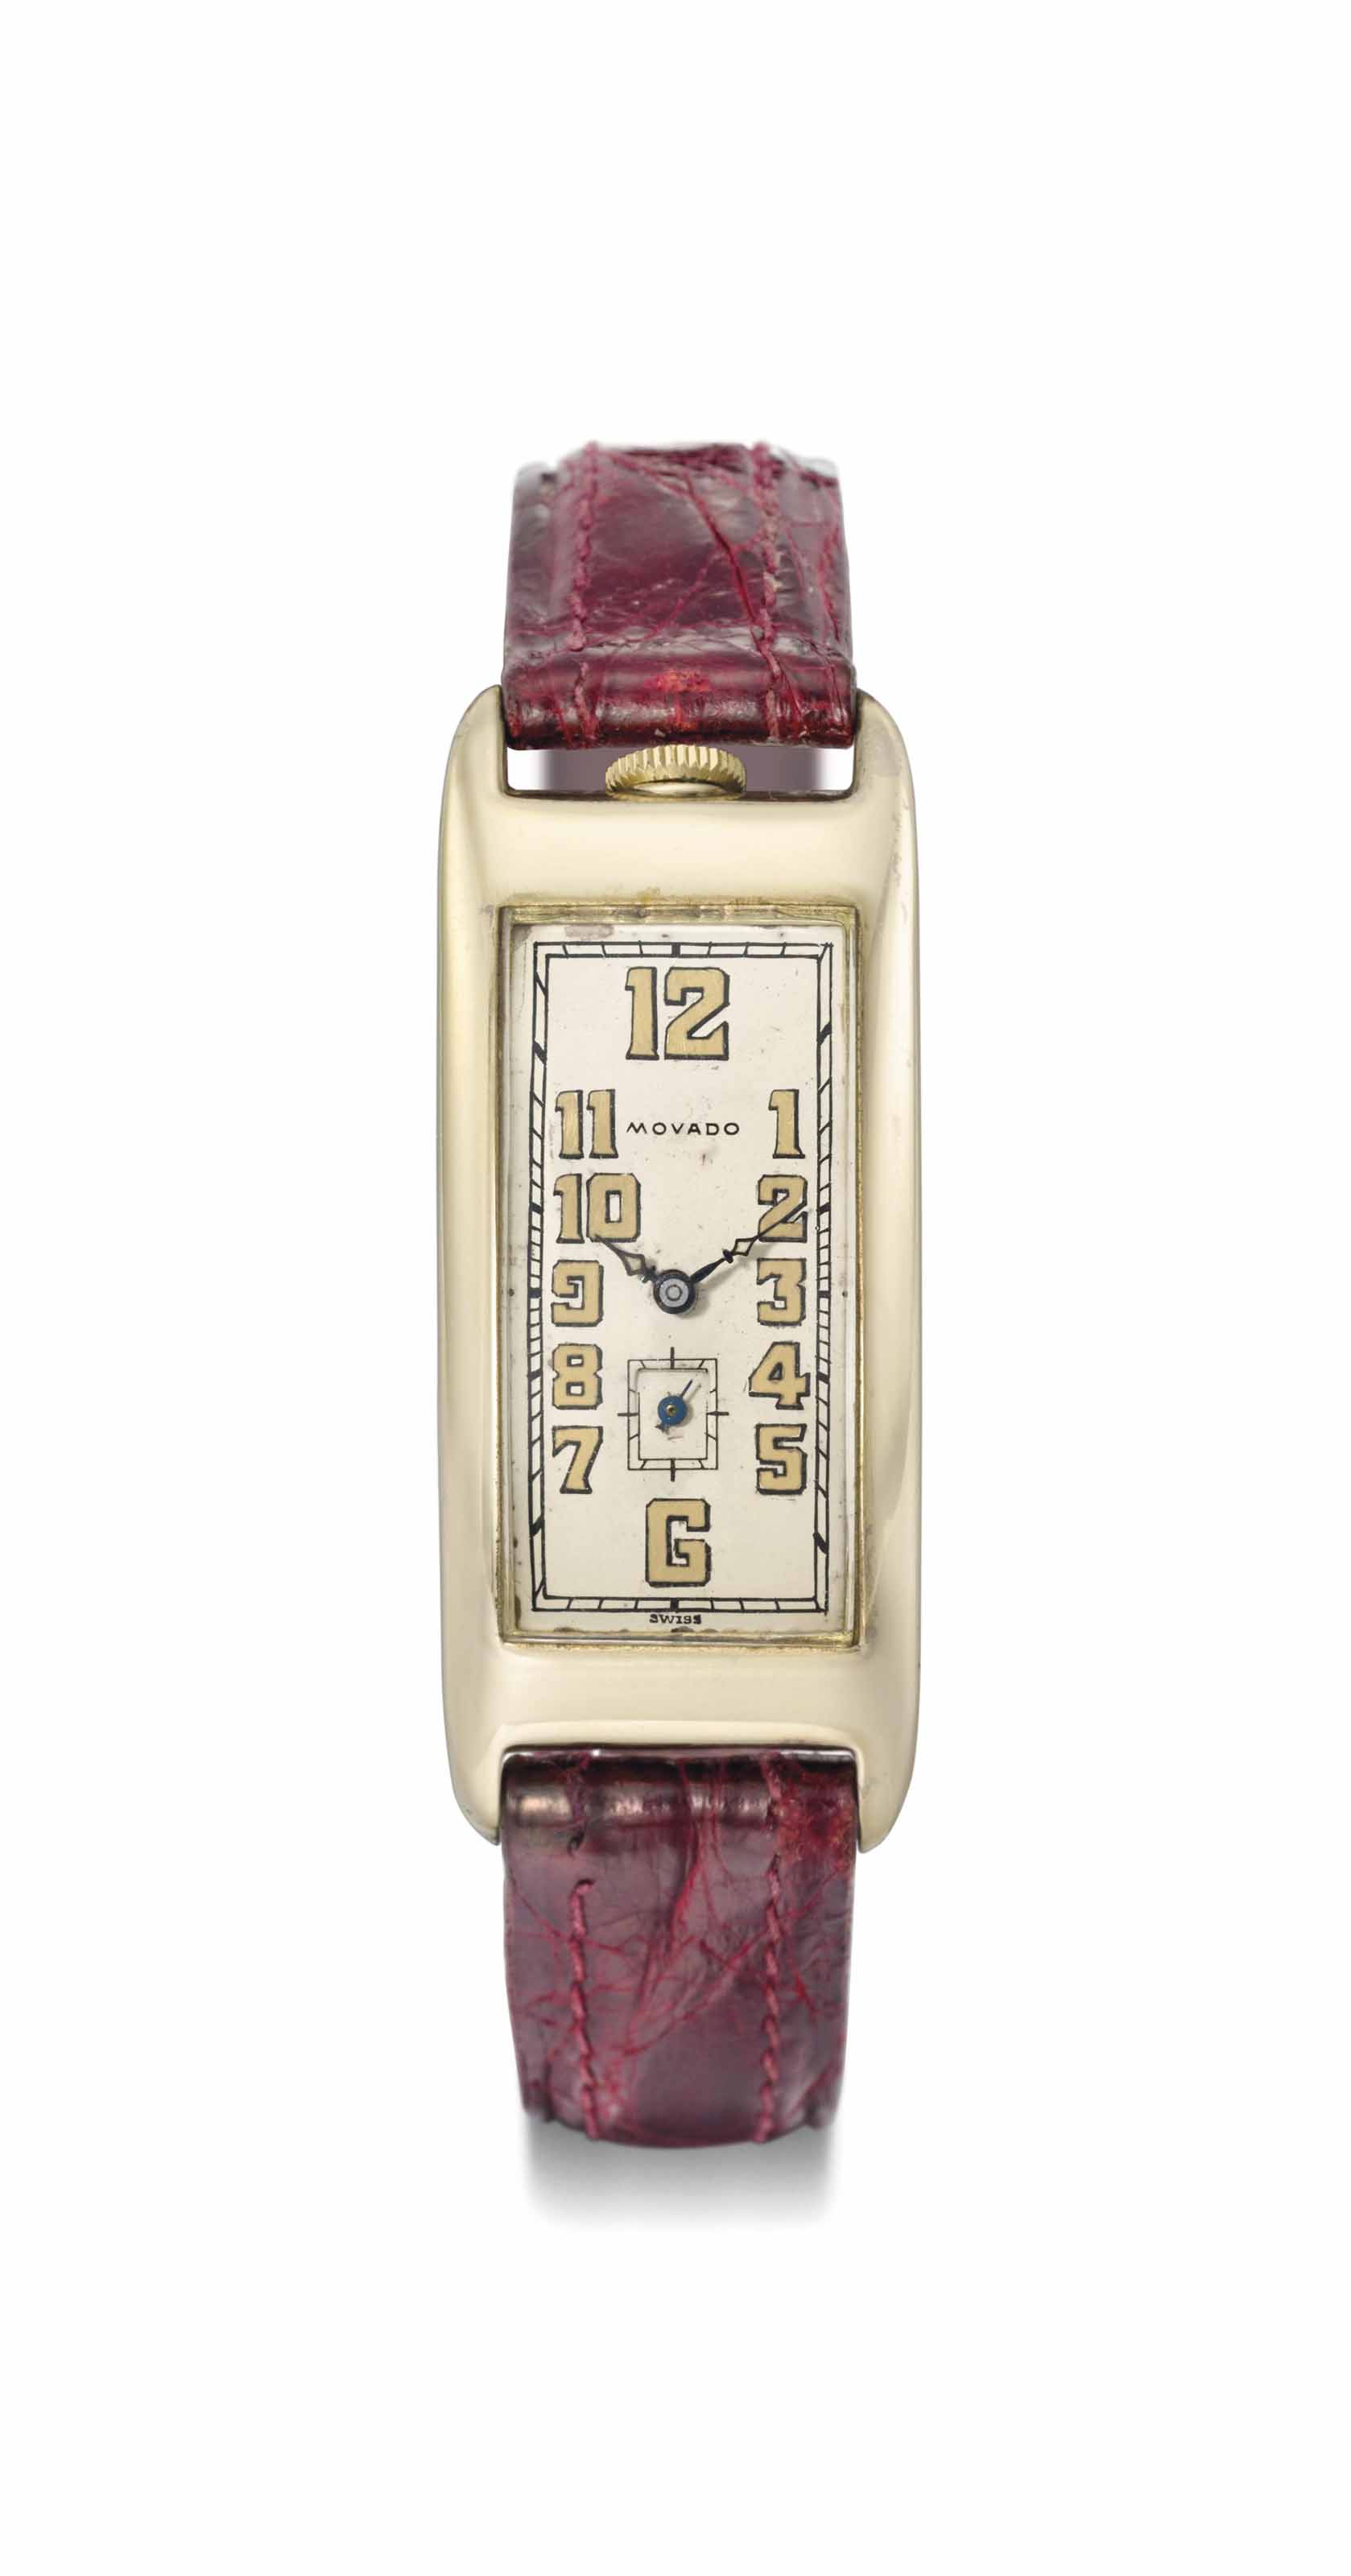 Movado. An early and unusual large 14K gold rectangular curved hinged wristwatch